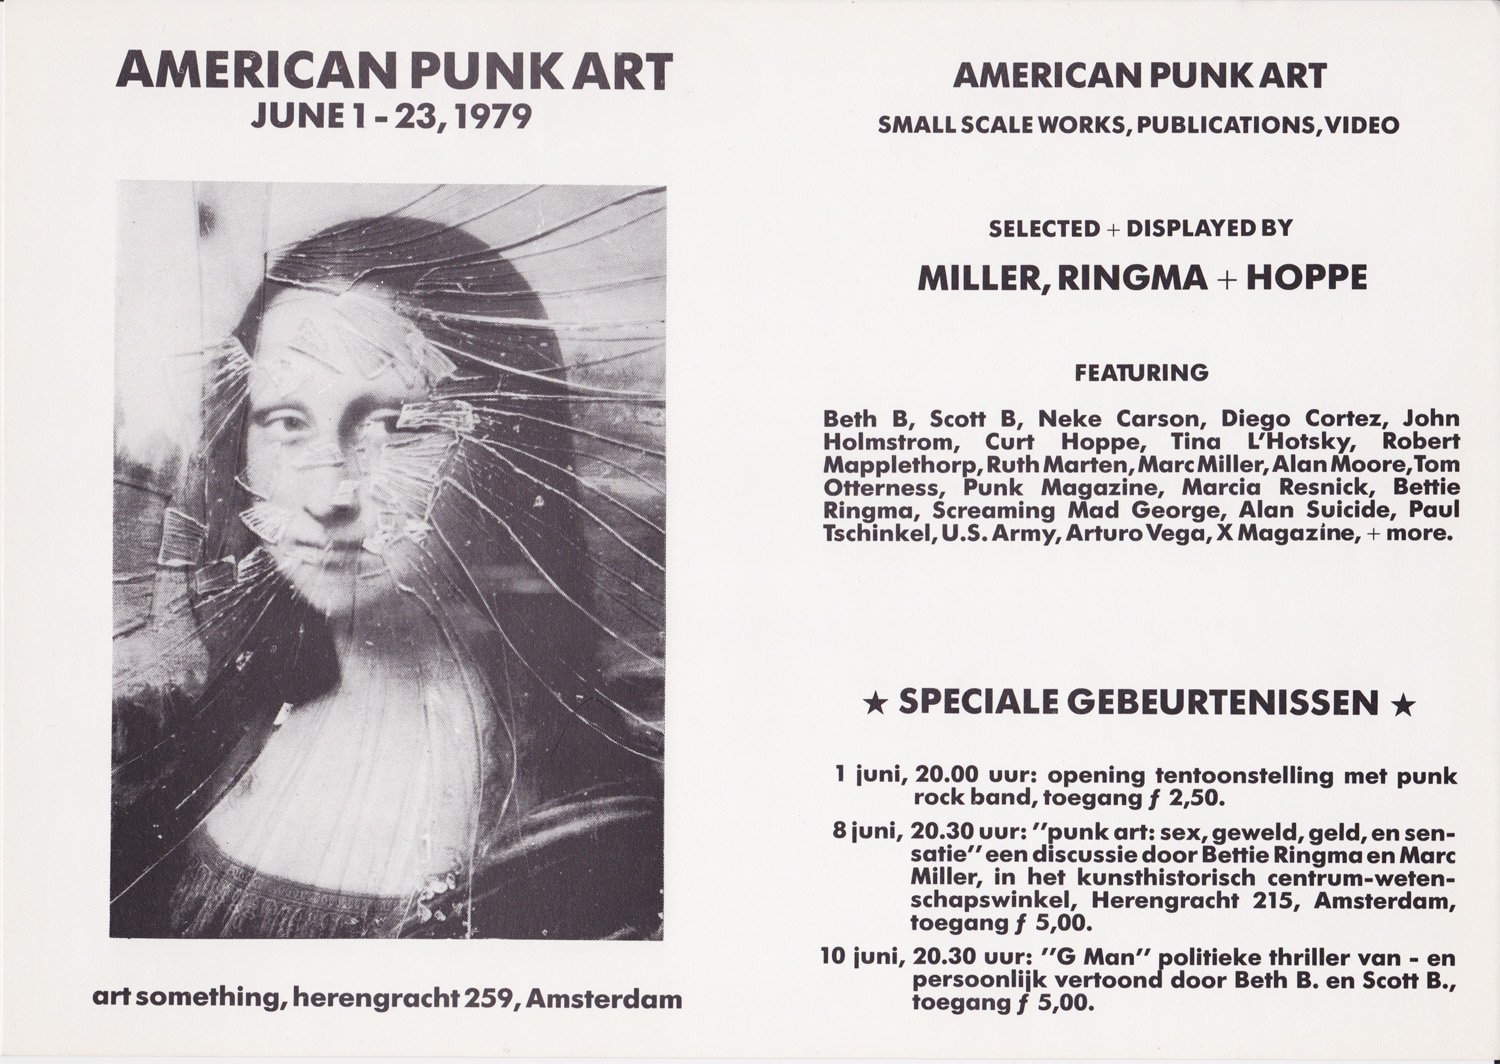 American Punk Art invite, June 1-23, 1979